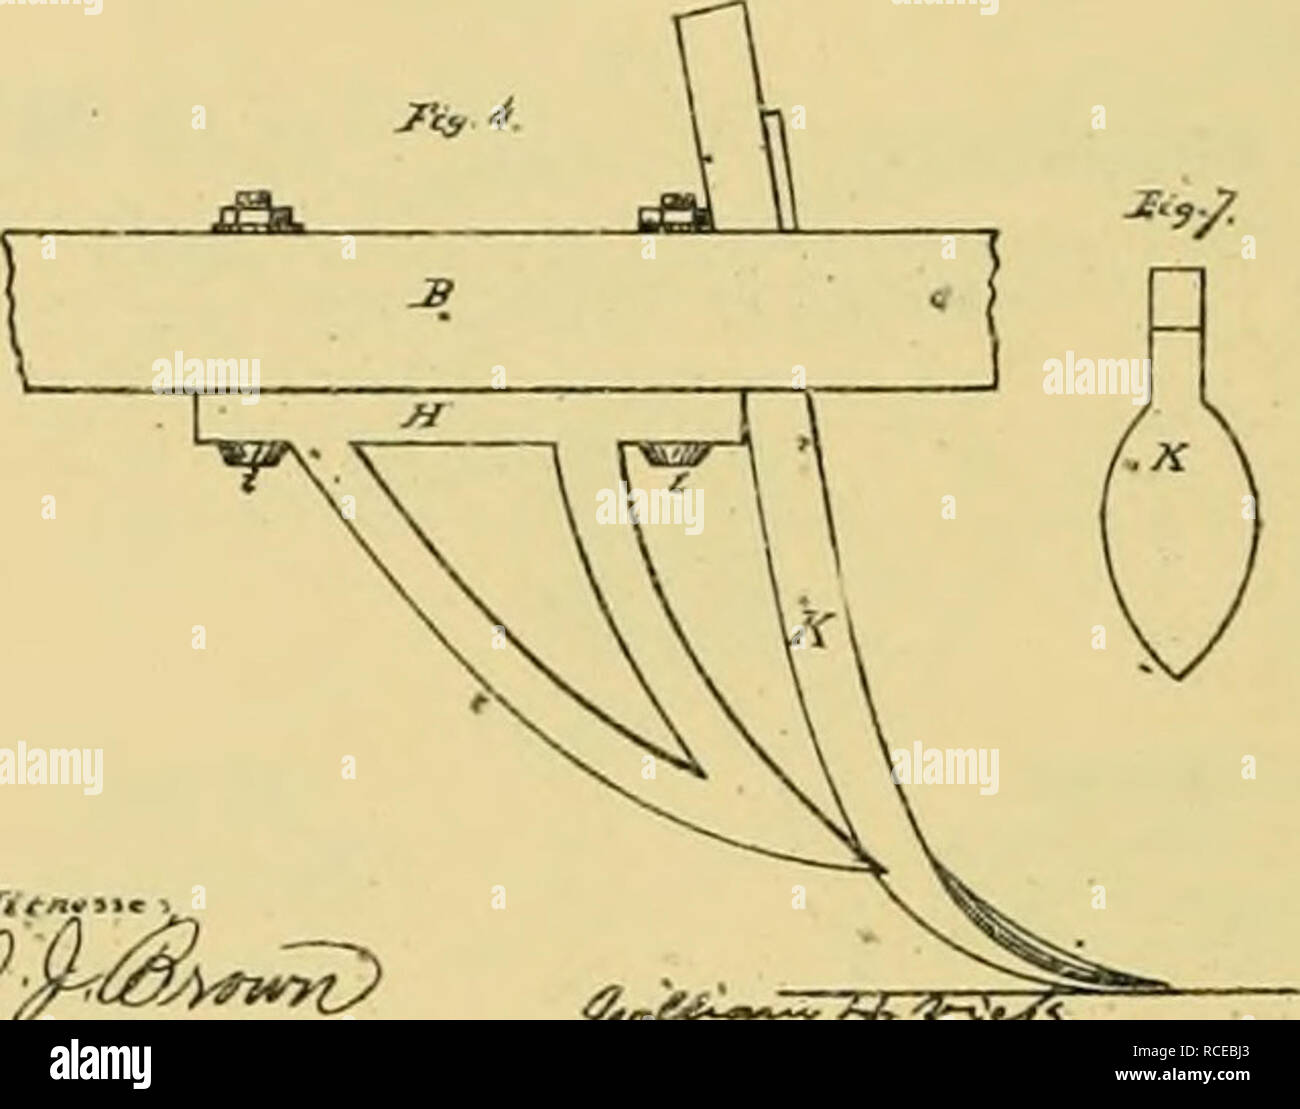 hight resolution of digest of agricultural implements patented in the united states from a d 1789 to july